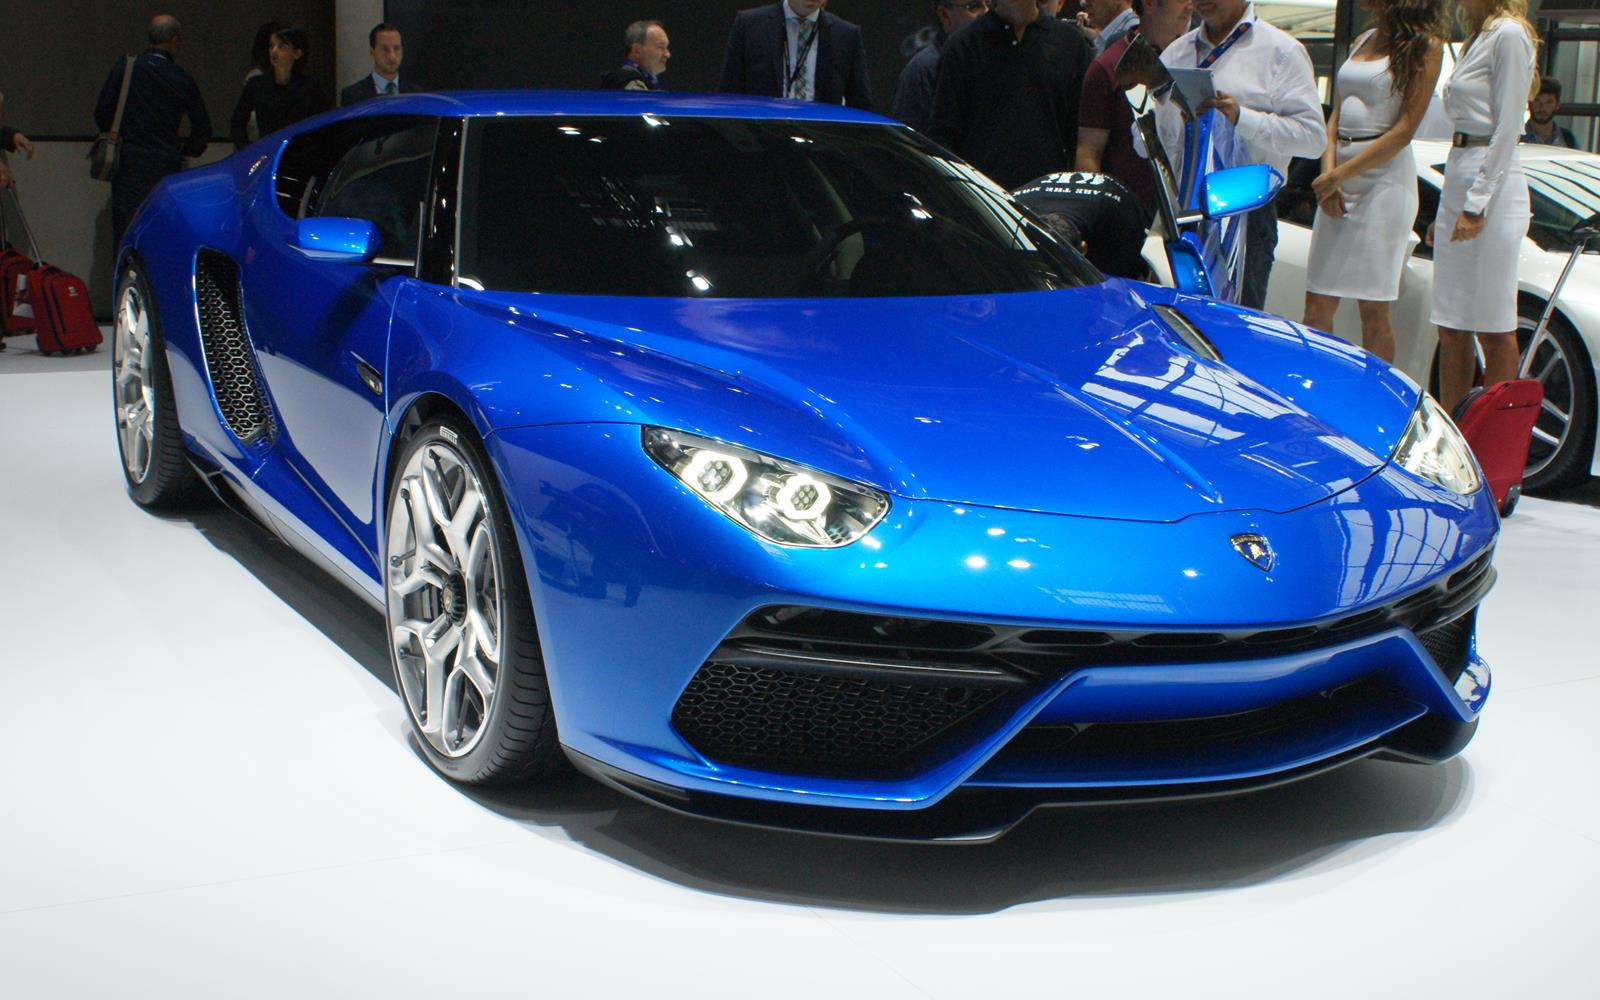 Paris Motor Show 2014 Lamborghini Asterion FrontSeatDriver.co.uk